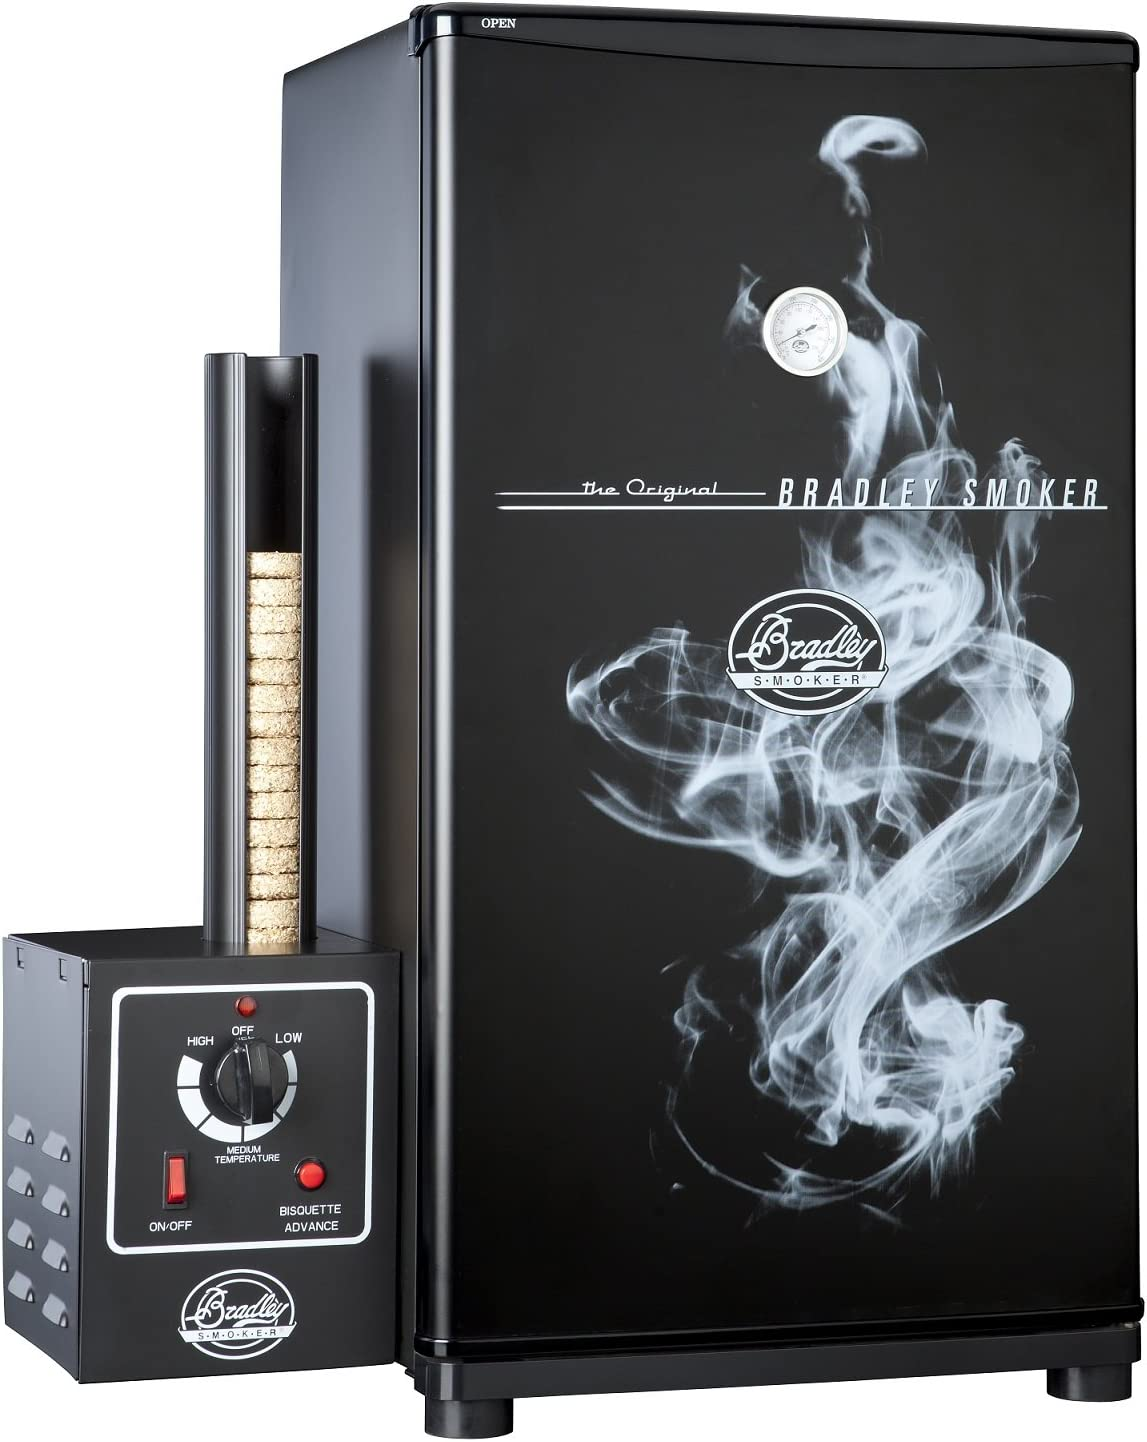 Bradley Smoker BS611 Electric Smoker review